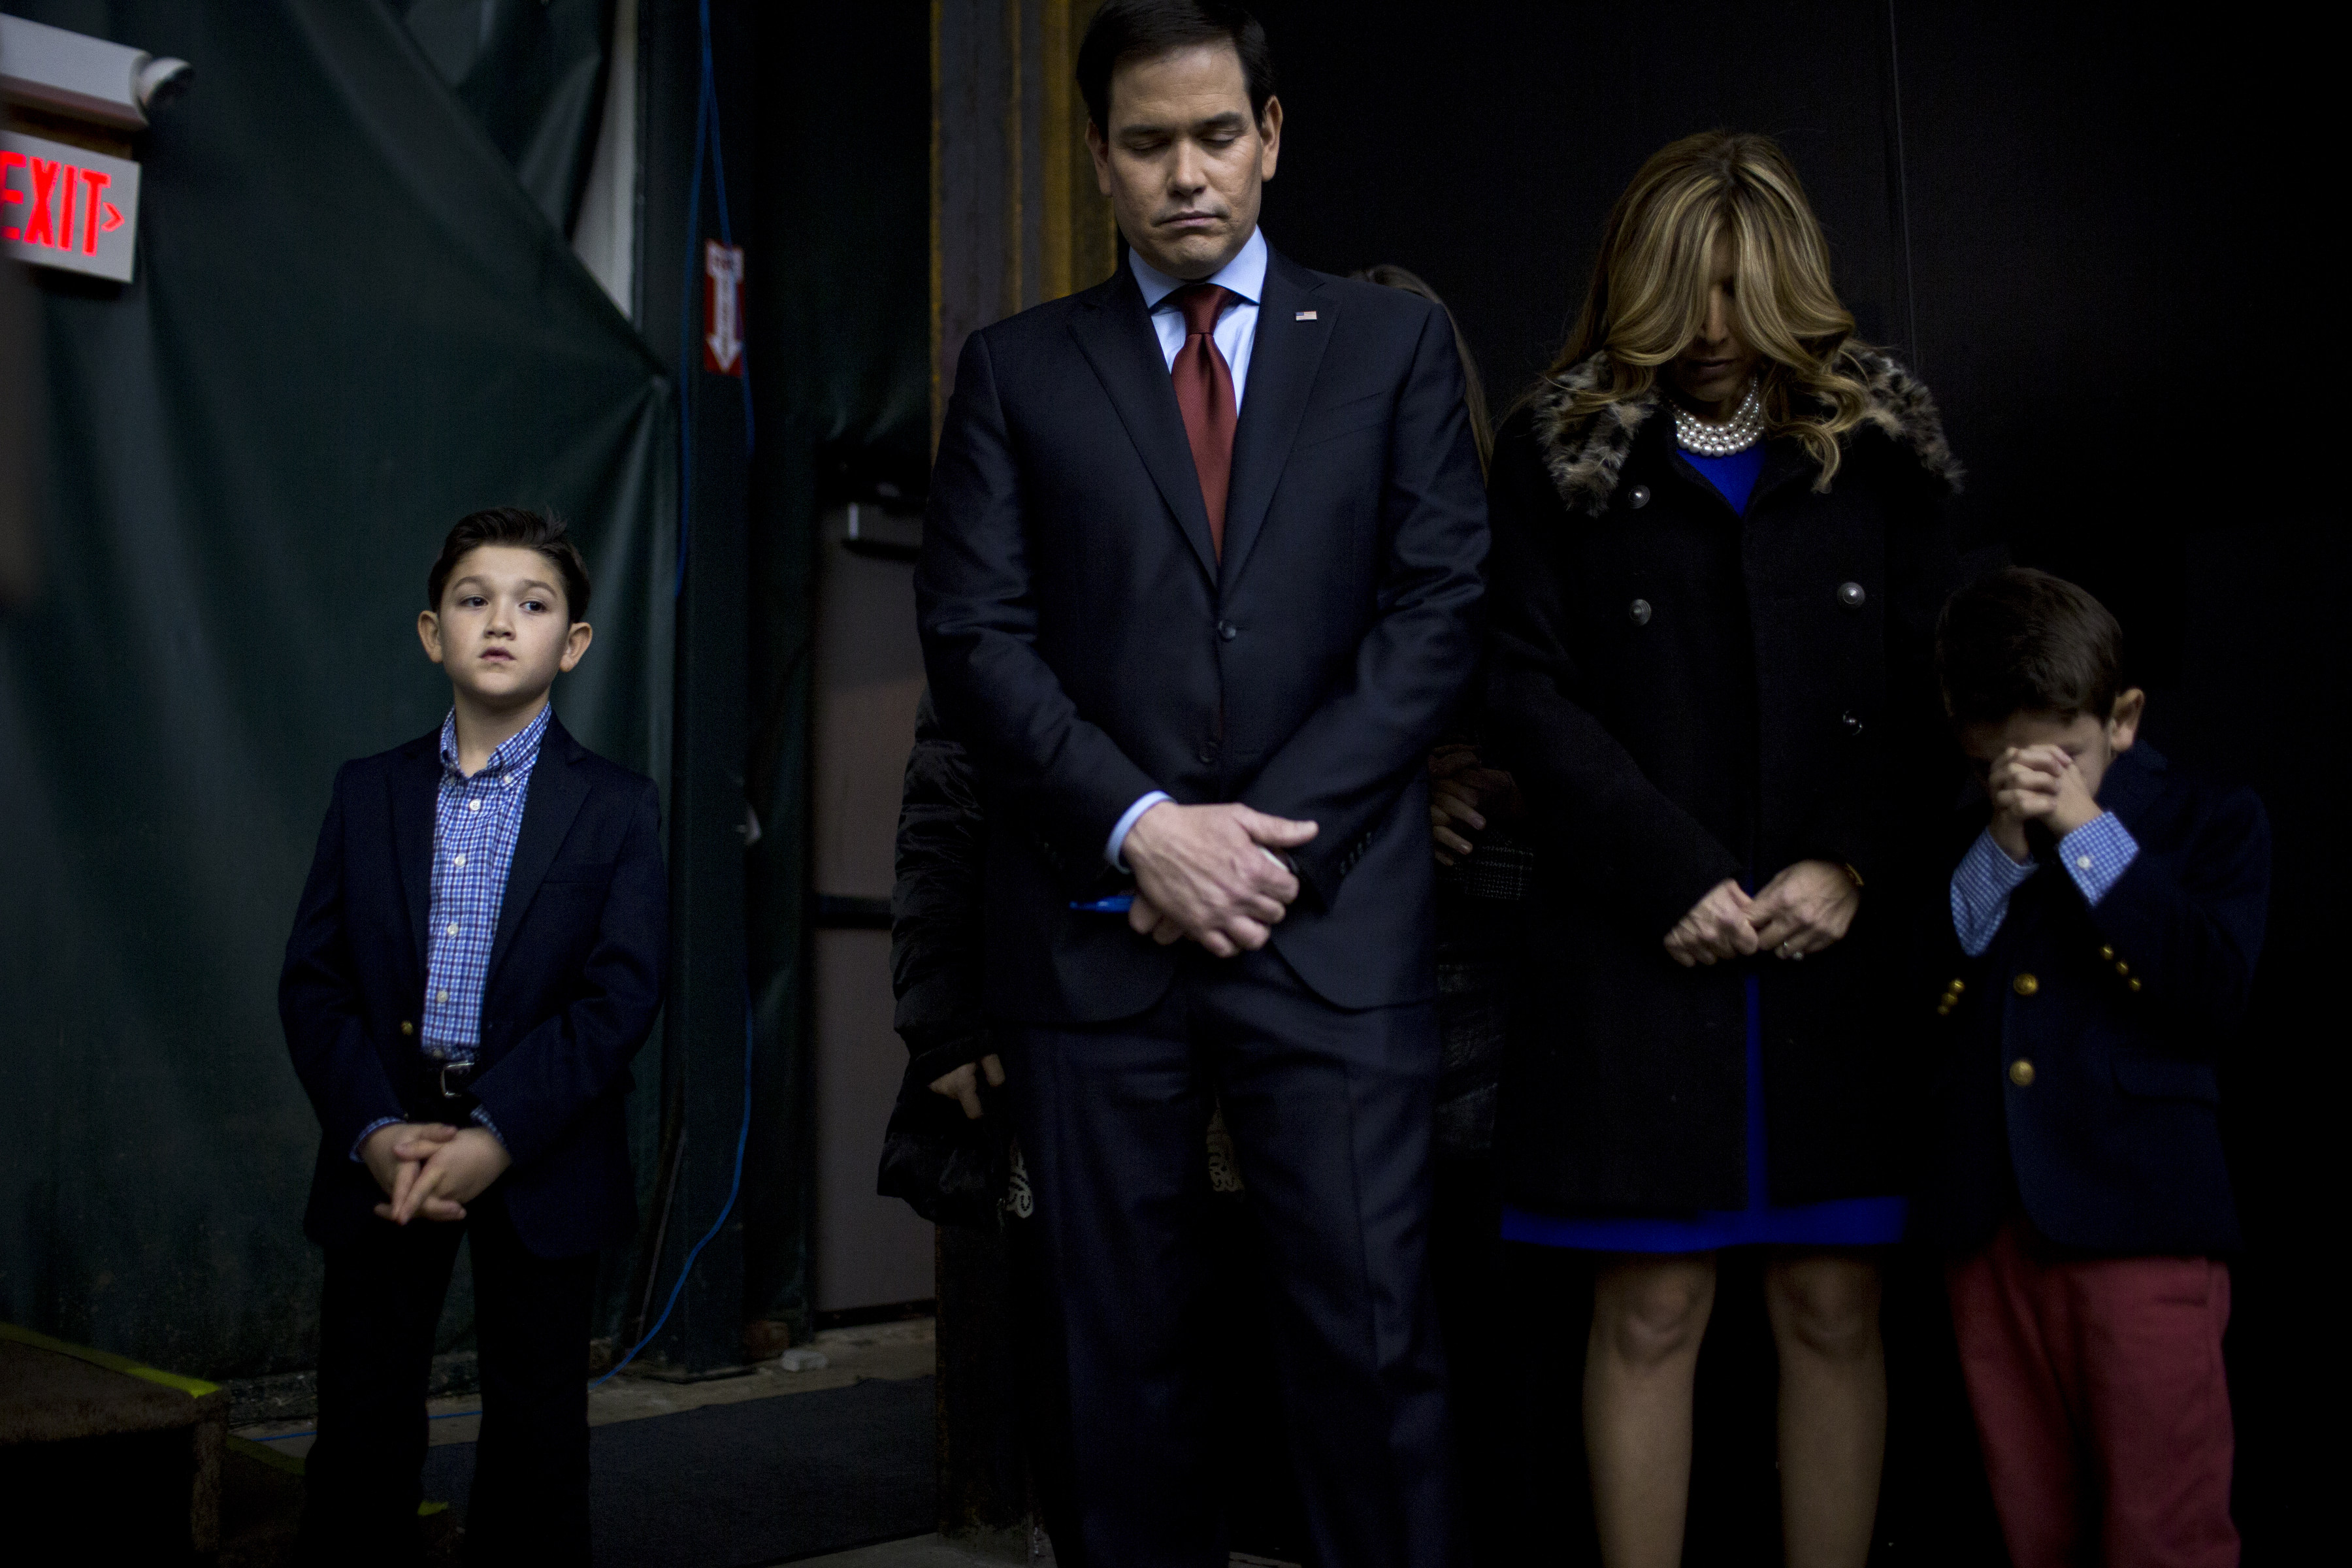 Marco Rubio appears with his family at his caucus location in Clive, Iowa, on Feb. 1, 2016.